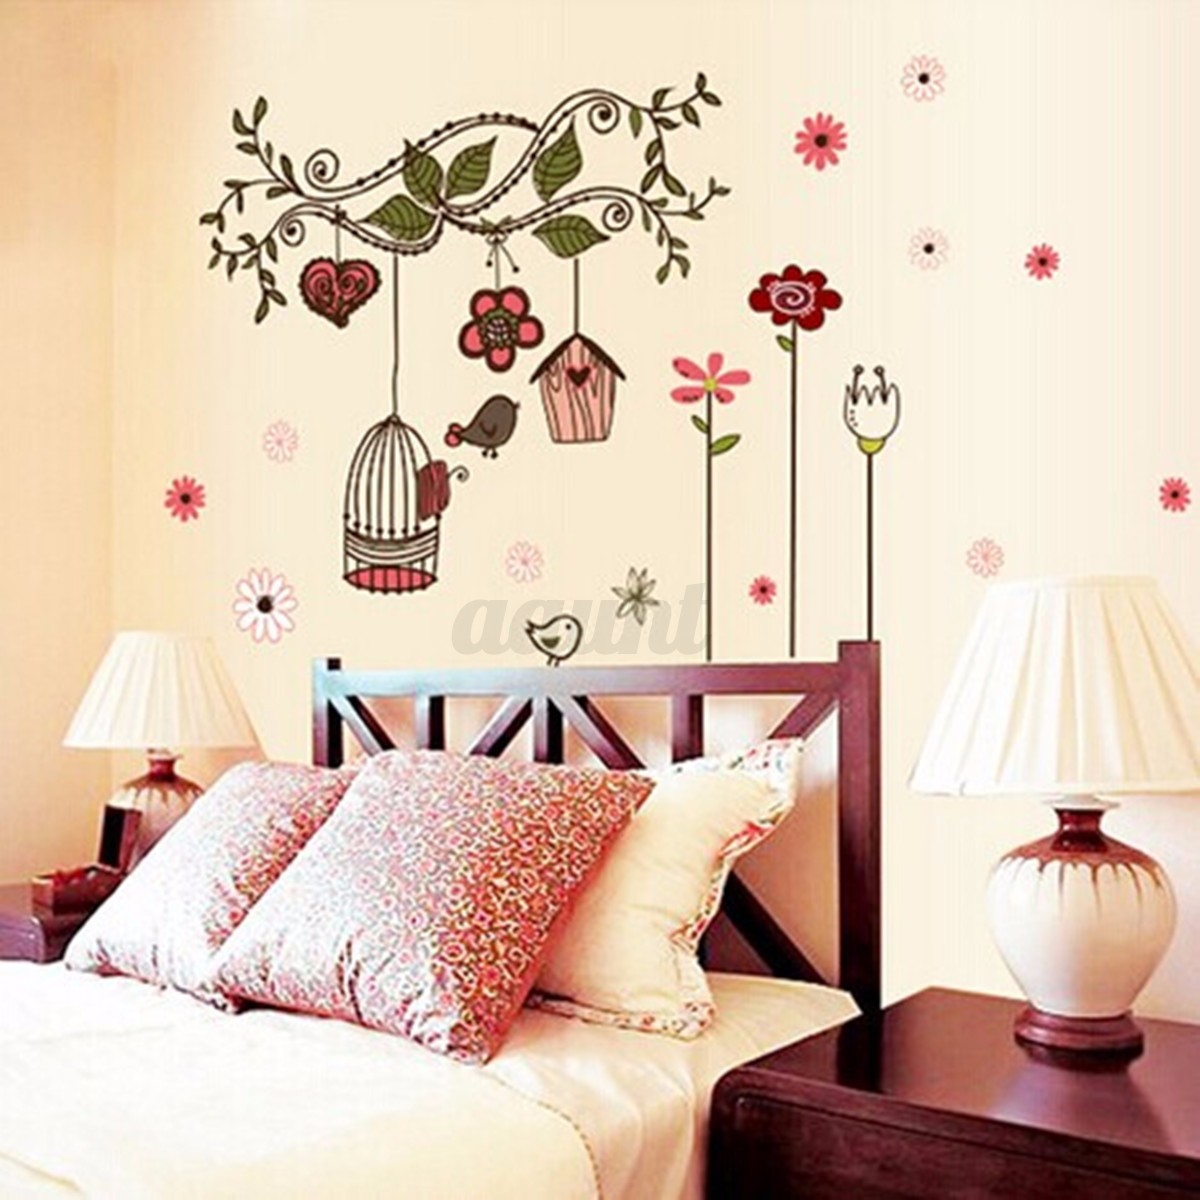 Bedroom Wall Art Trees Diy Removable Tree Wall Decals Kids Bedroom Baby Nursery